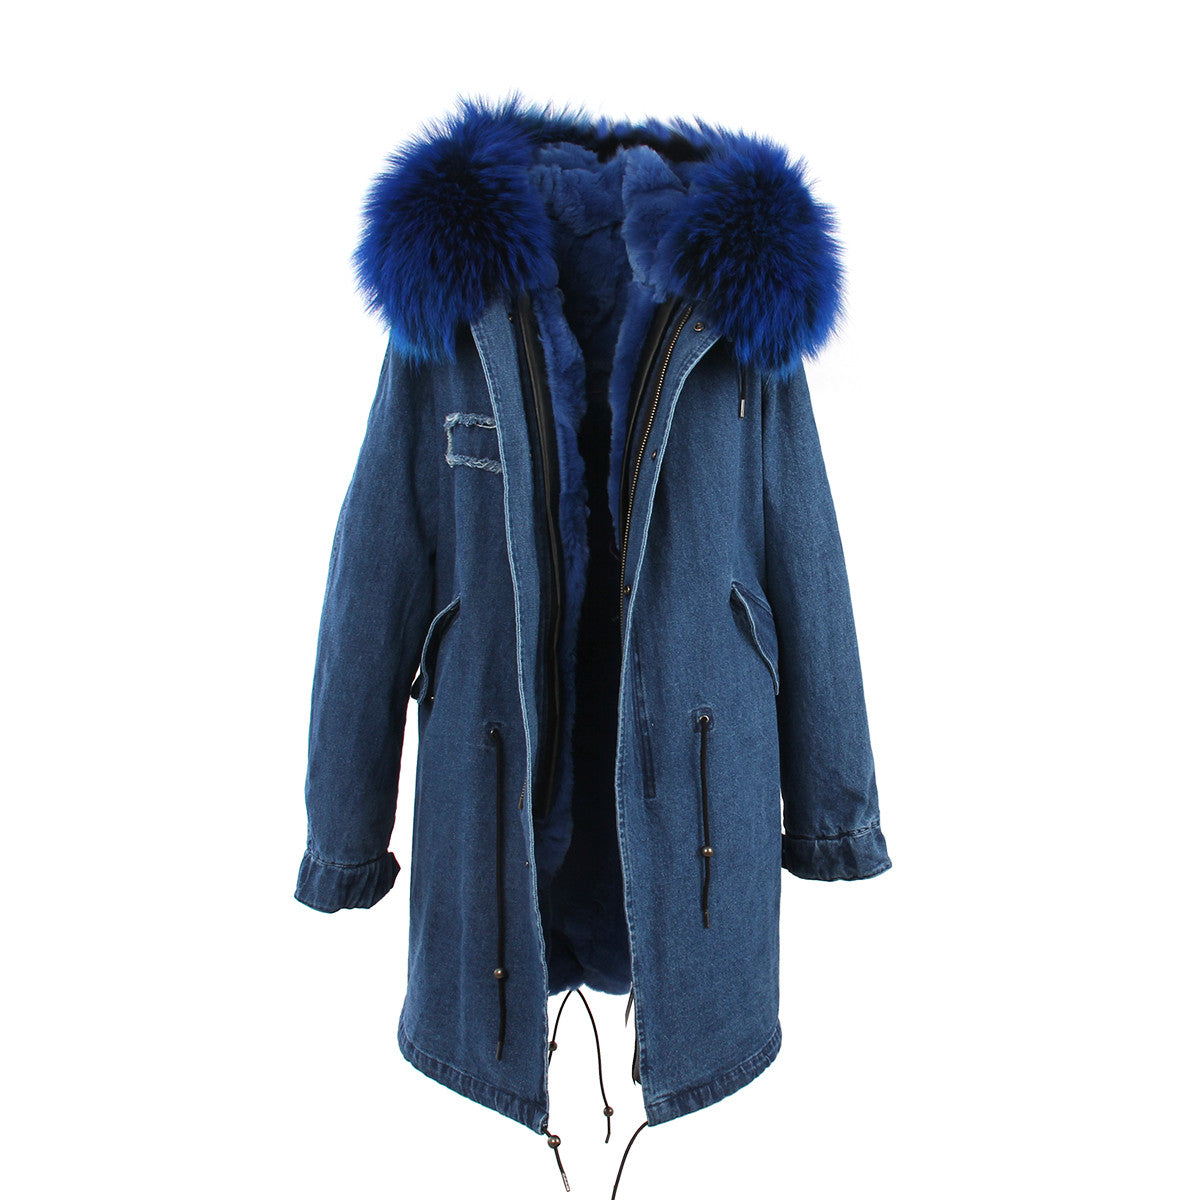 Fashion Women Raccoon Rabbit Fur Coat - All In One Place With Us - 21